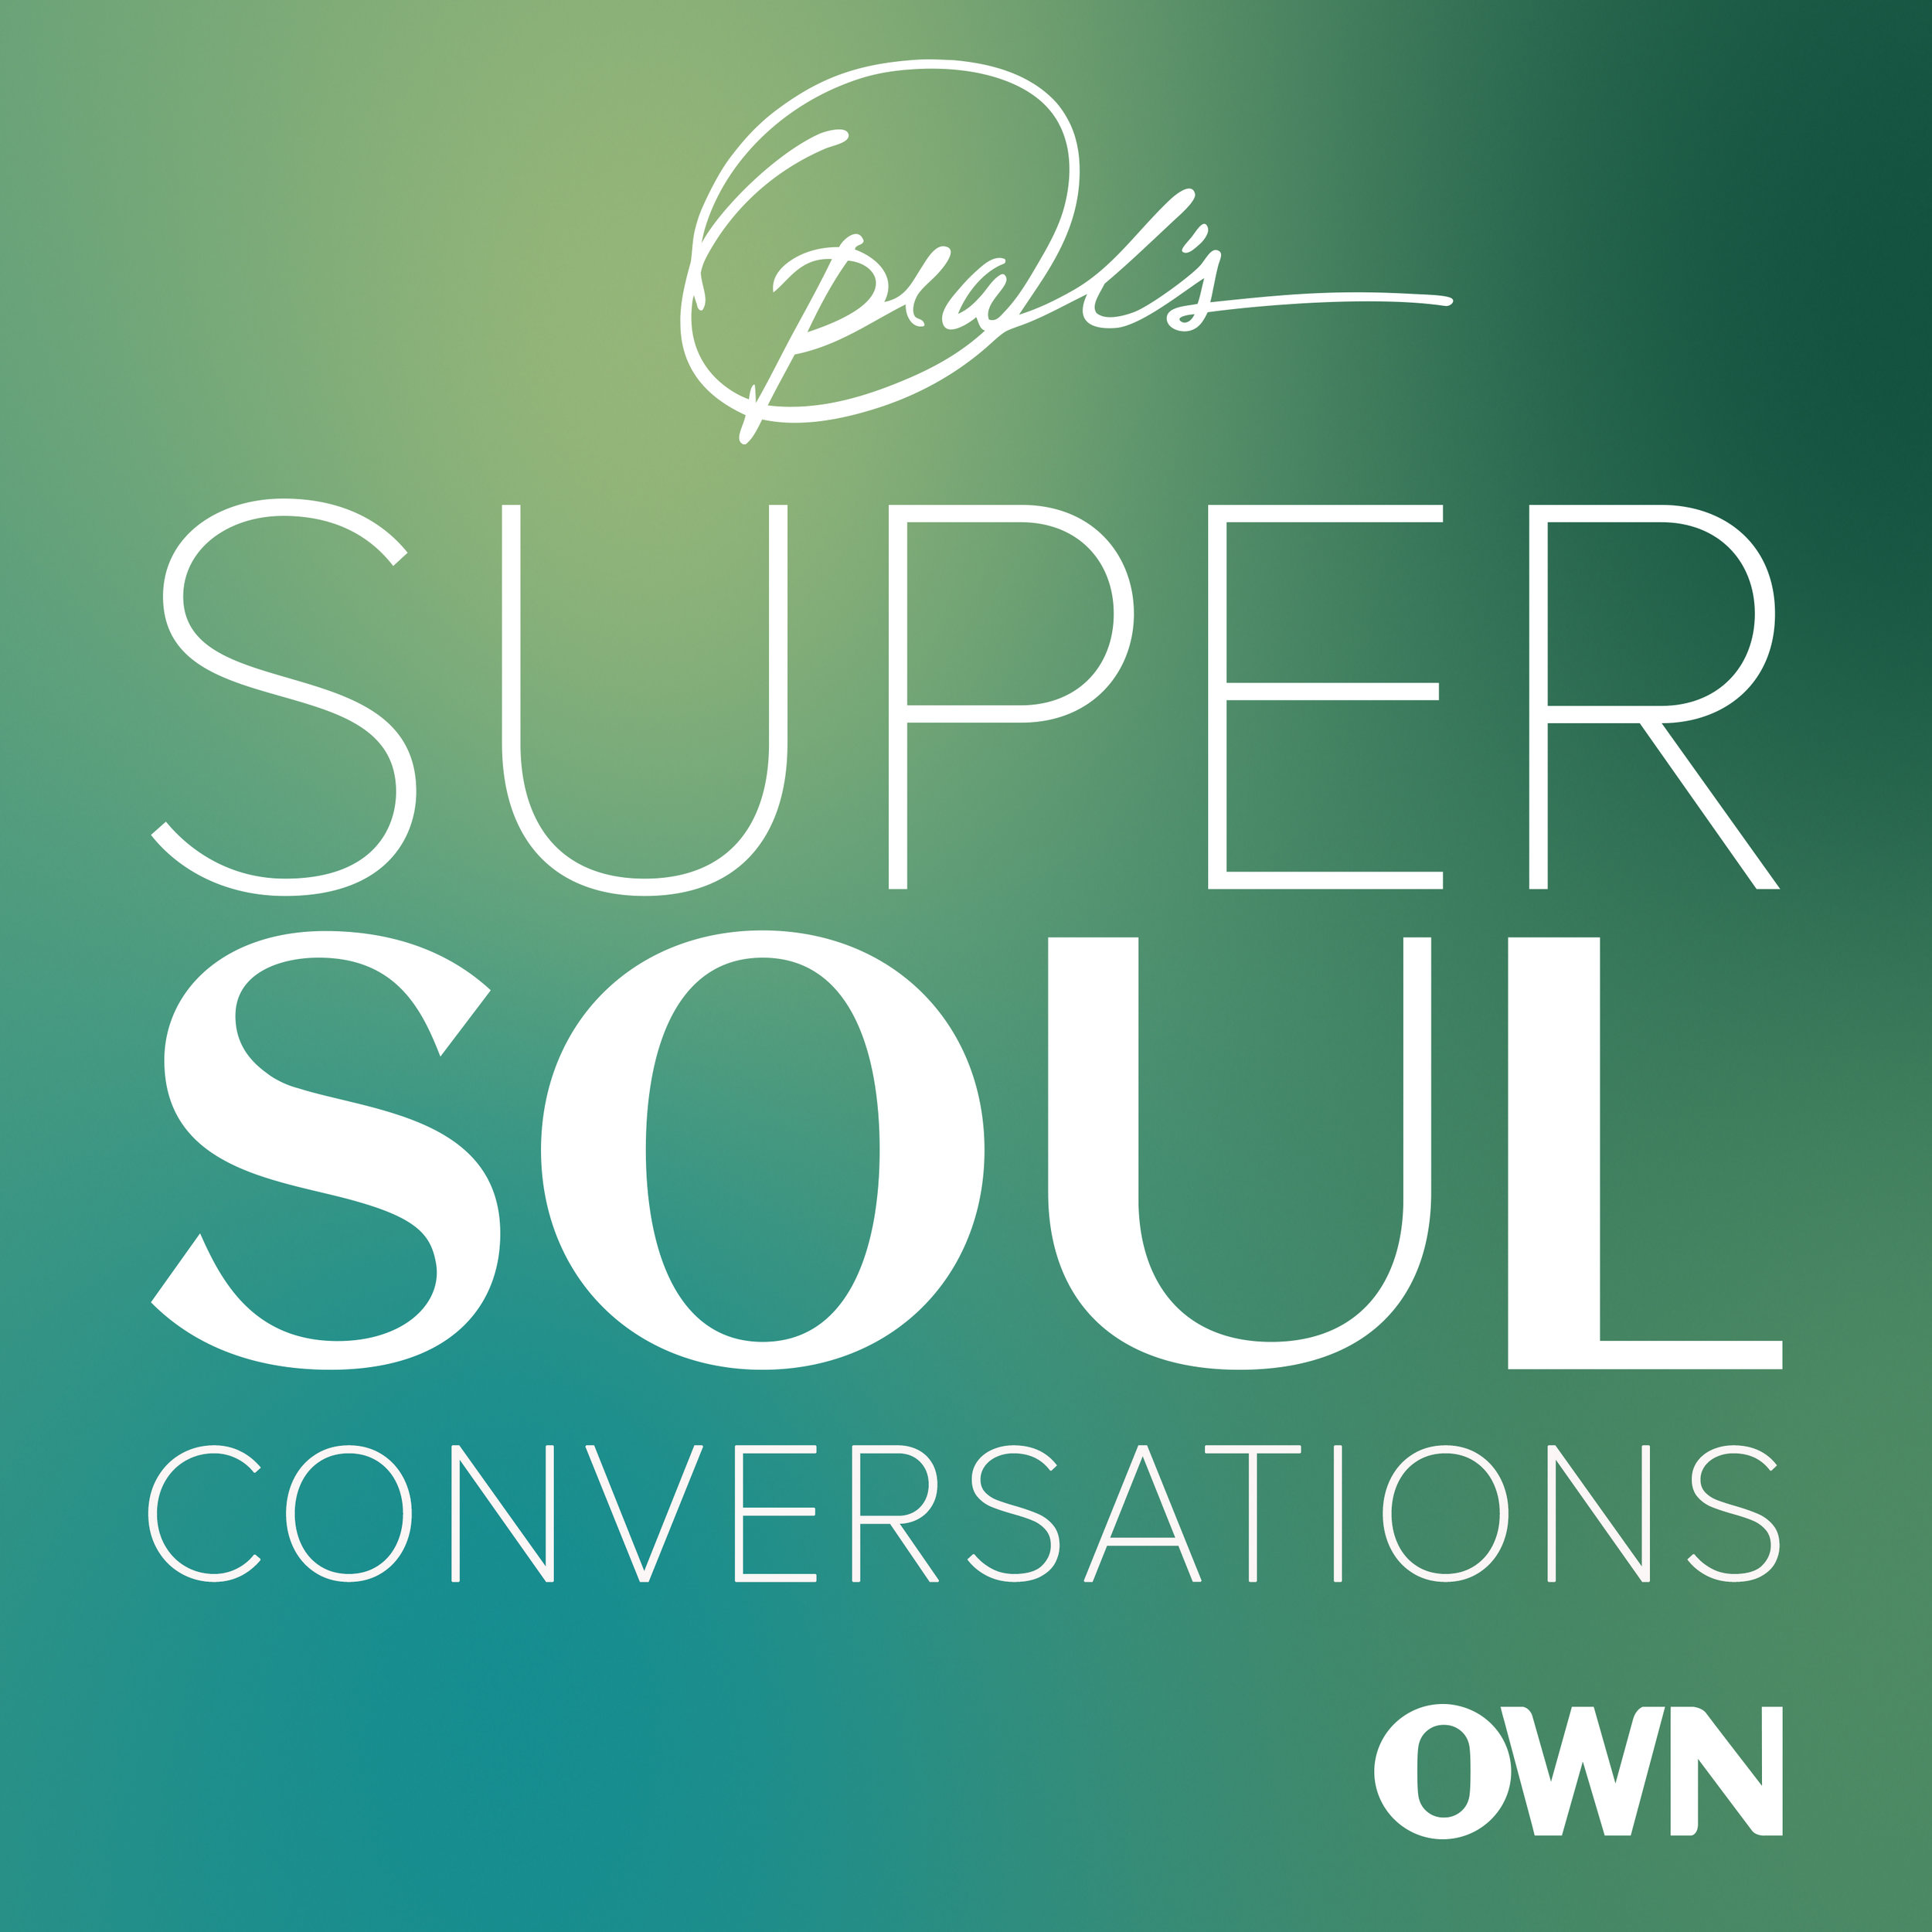 #4 - Who doesn't love Oprah?Hear her personal selection of interviews with thought-leaders, best-selling authors, spiritual luminaries, as well as health and wellness experts.